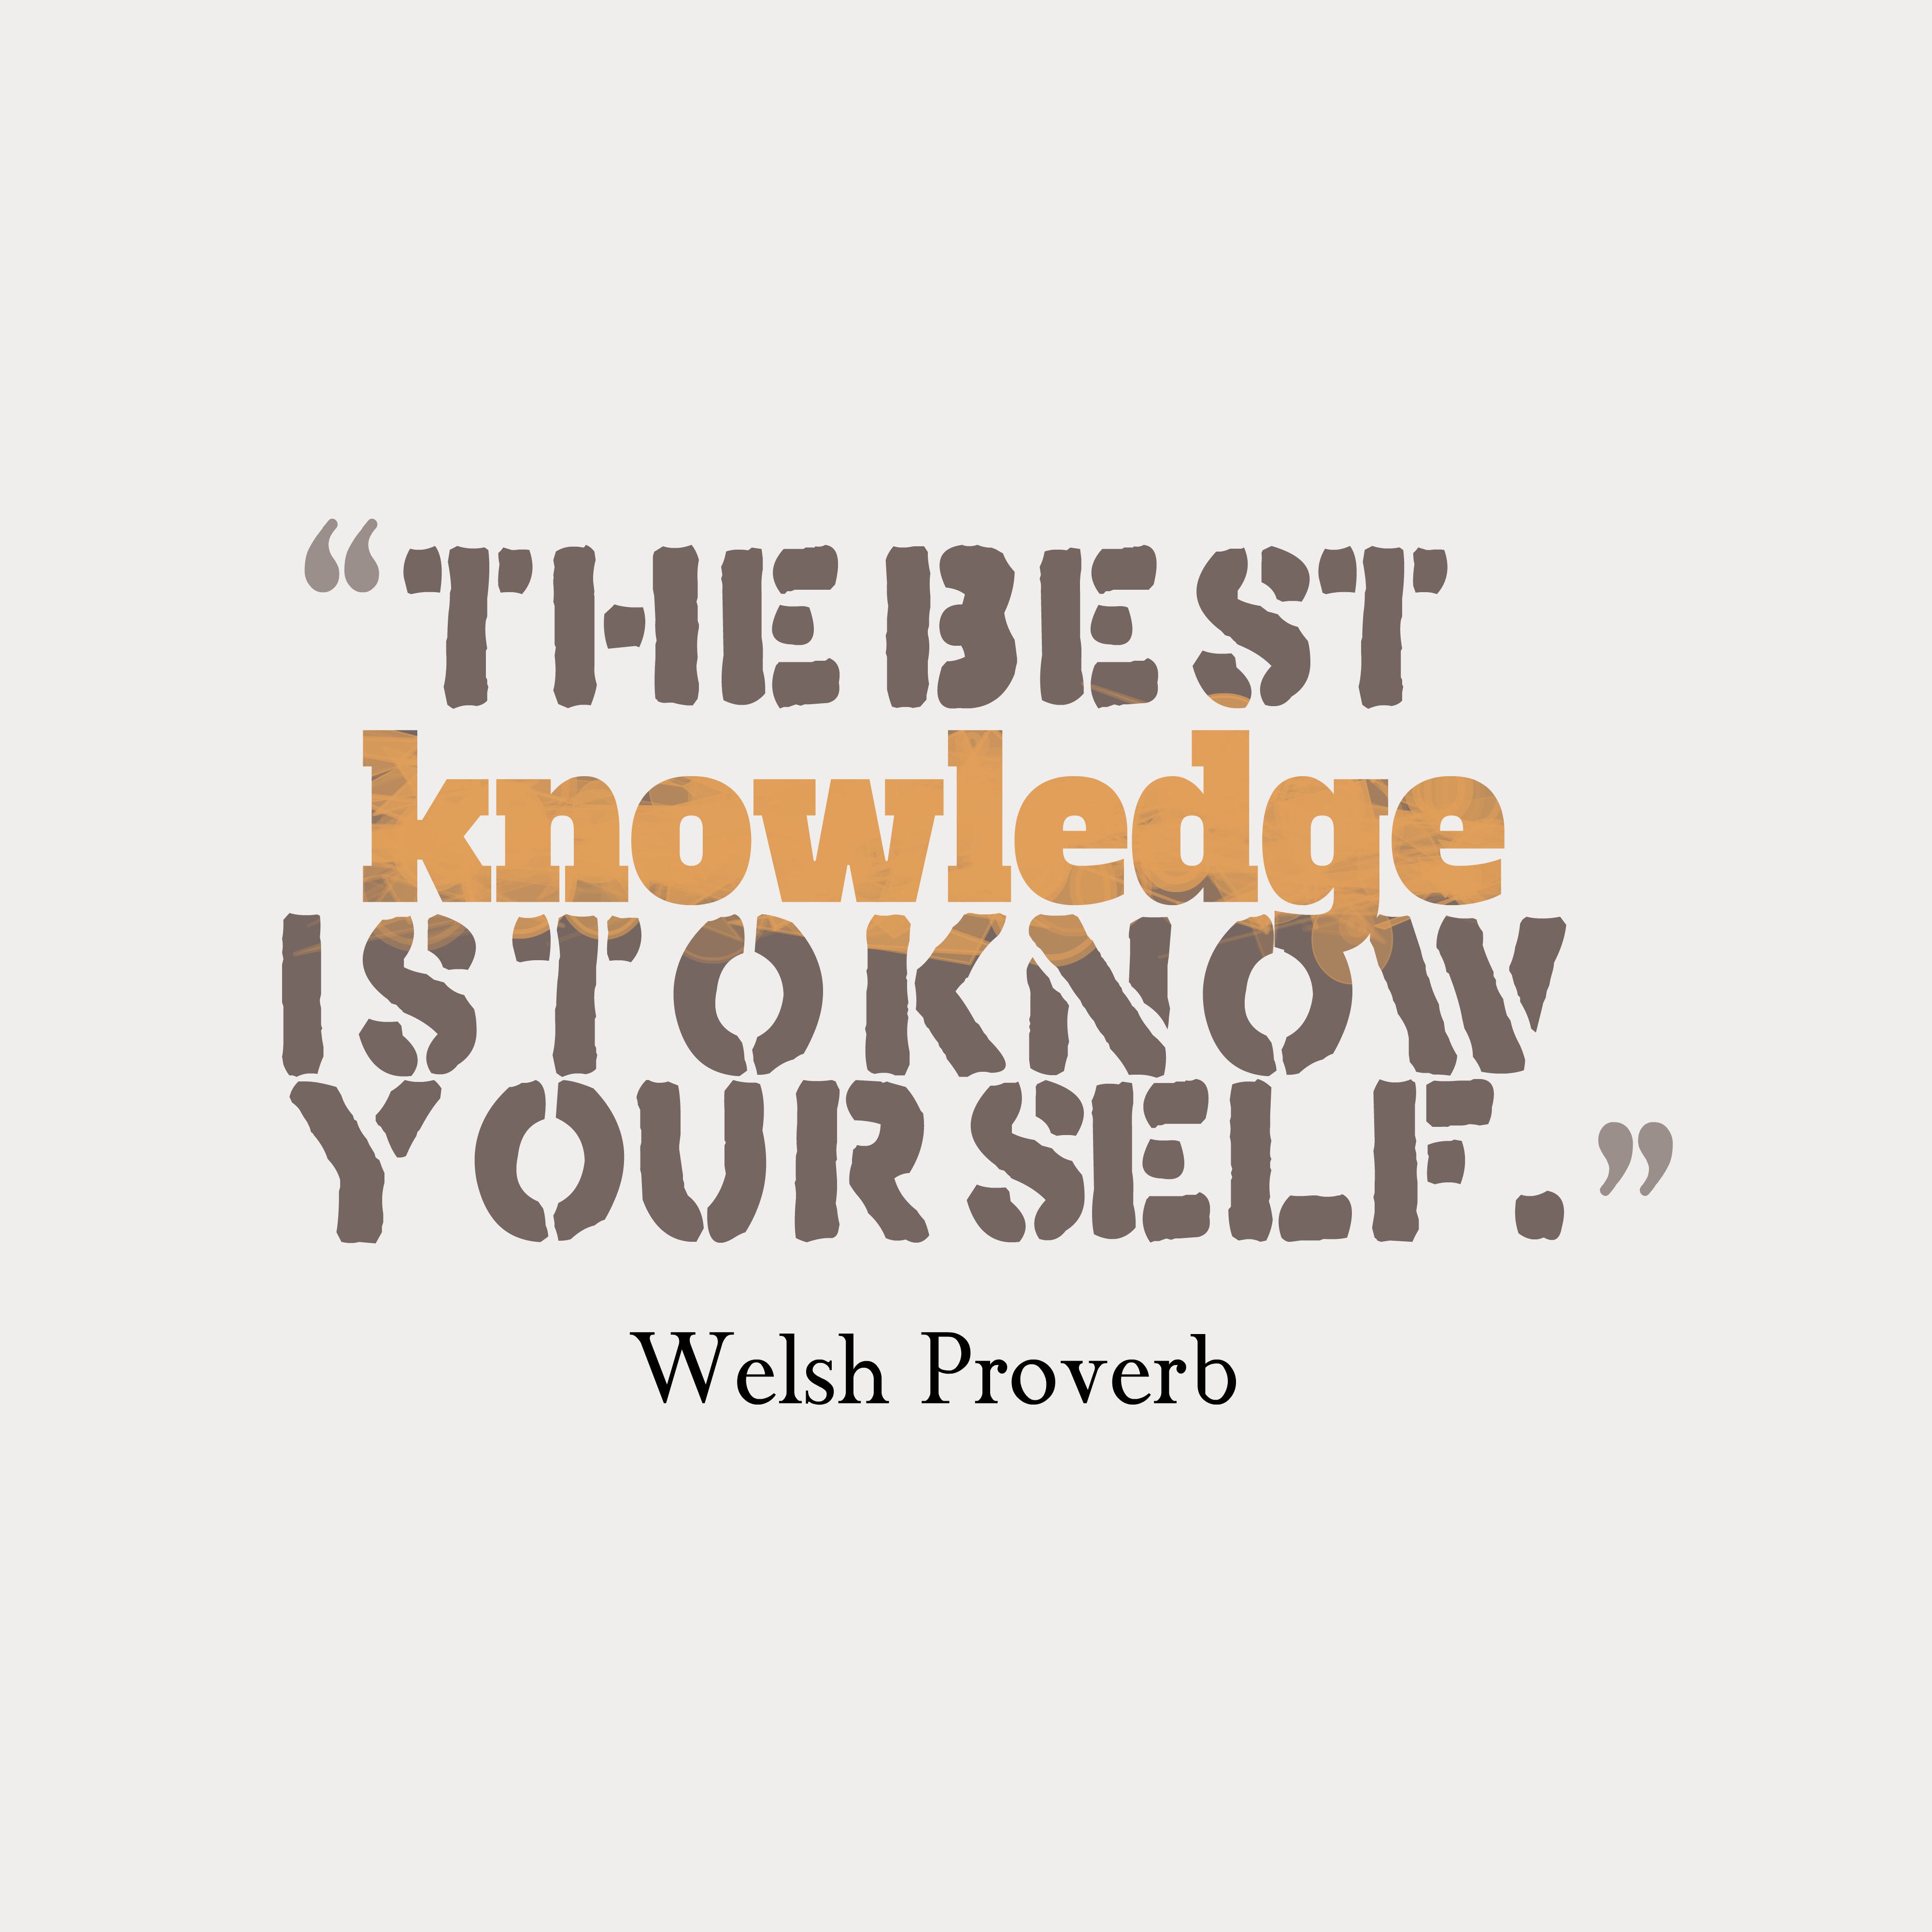 Quotes image of The best knowledge is to know yourself.